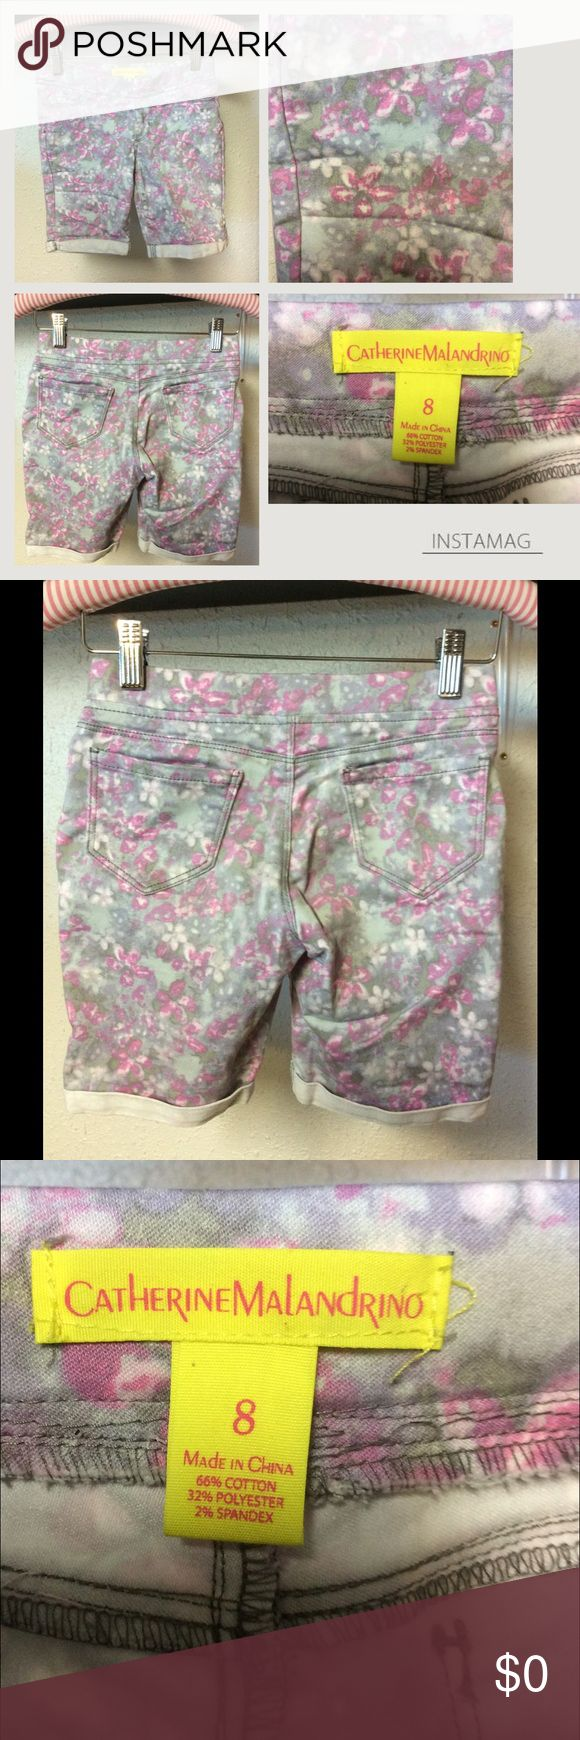 Catherine Malandrino Shorts Cotton polyester spandex blend floral shorts. Gently used. Catherine Malandrino Bottoms Shorts